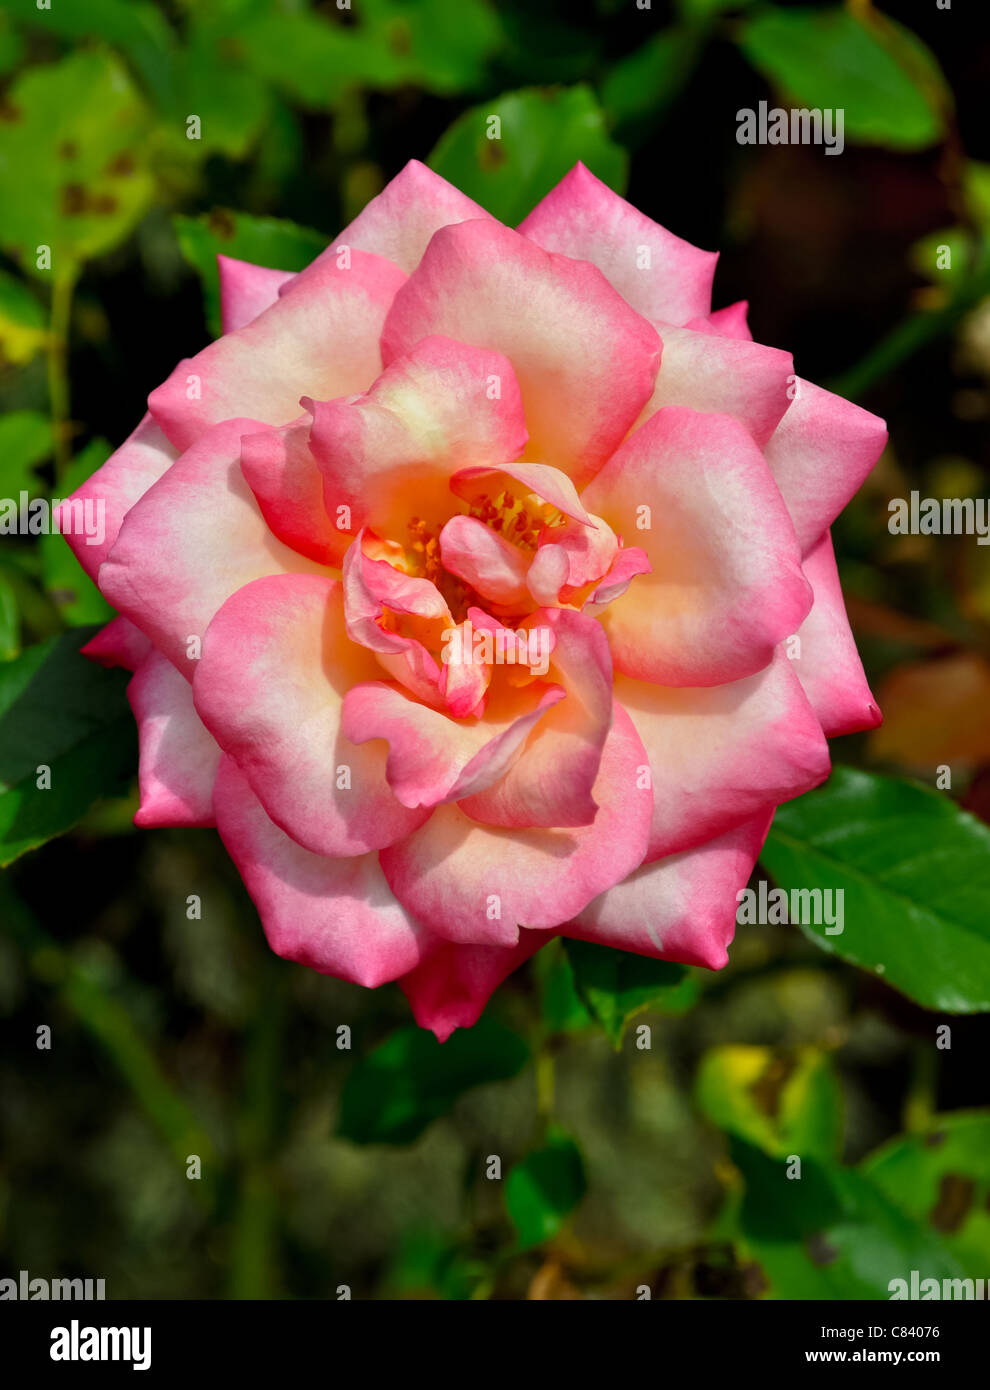 Rose Belle Stock Photos & Rose Belle Stock Images - Alamy